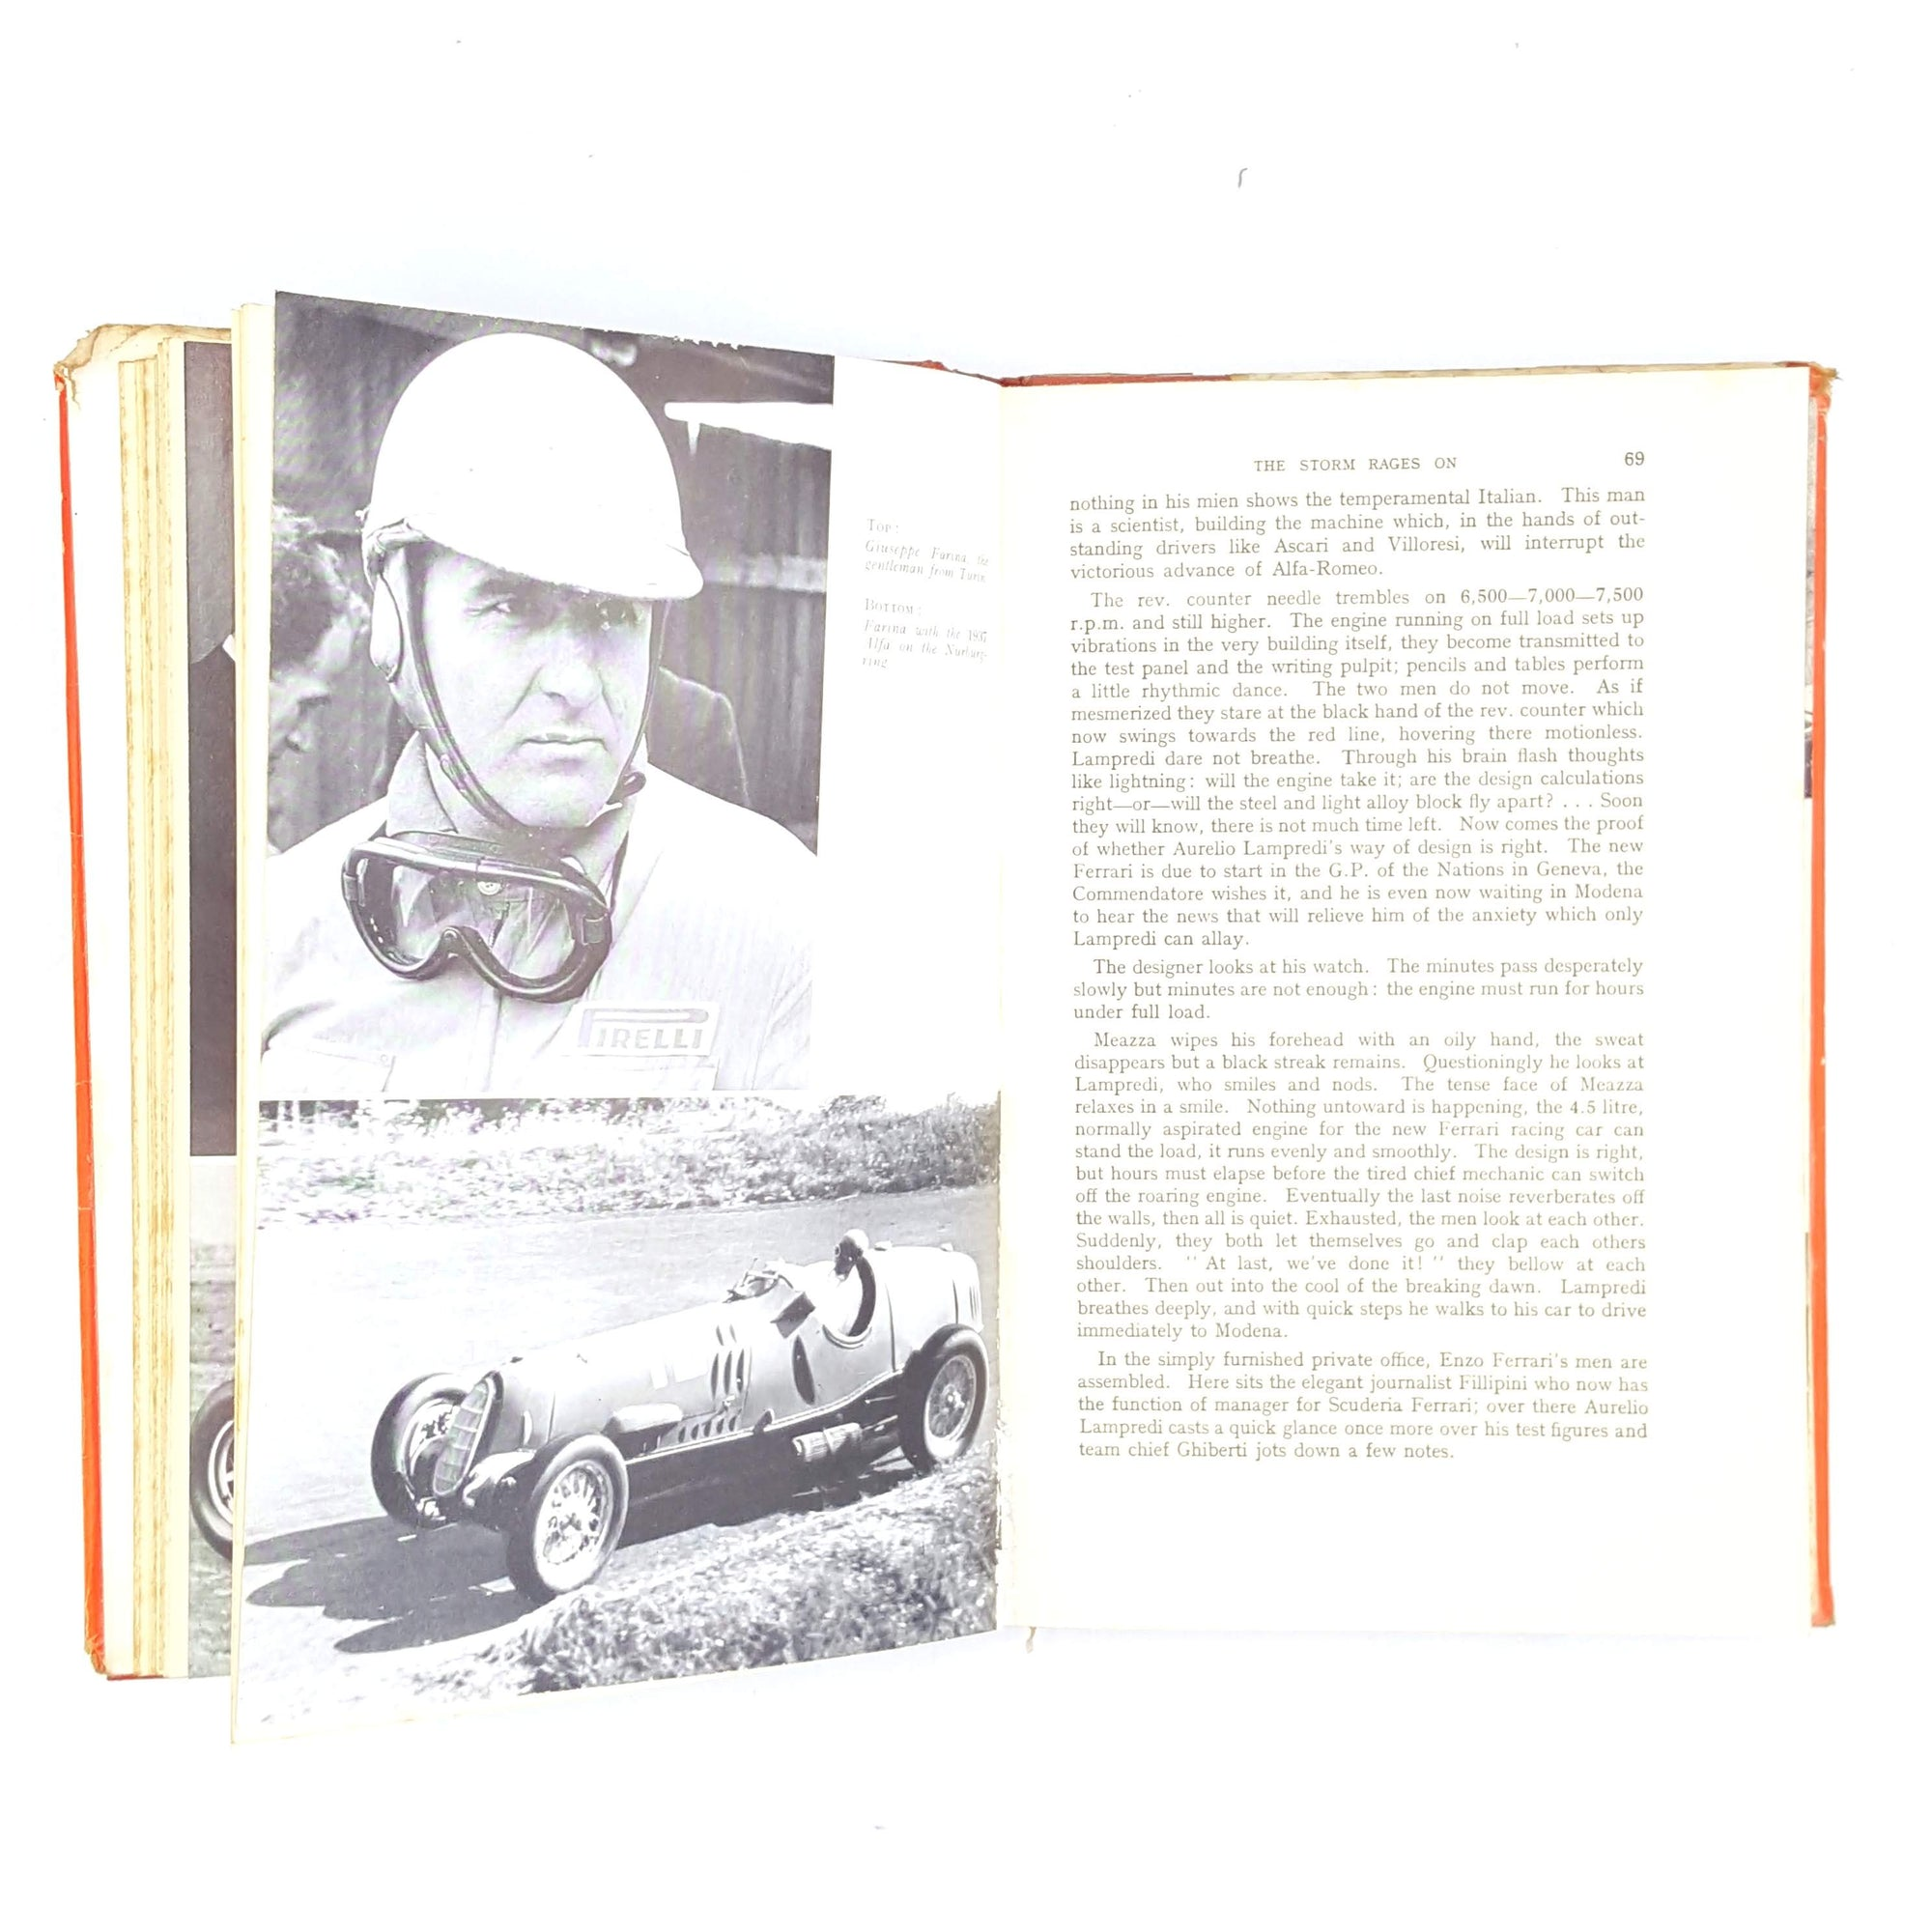 vintage-decorative-old-translated-antique-classic-gunther-molter-books-thrift-patterned-juan-manuel-fangio-racing-country-house-library-1956-red-